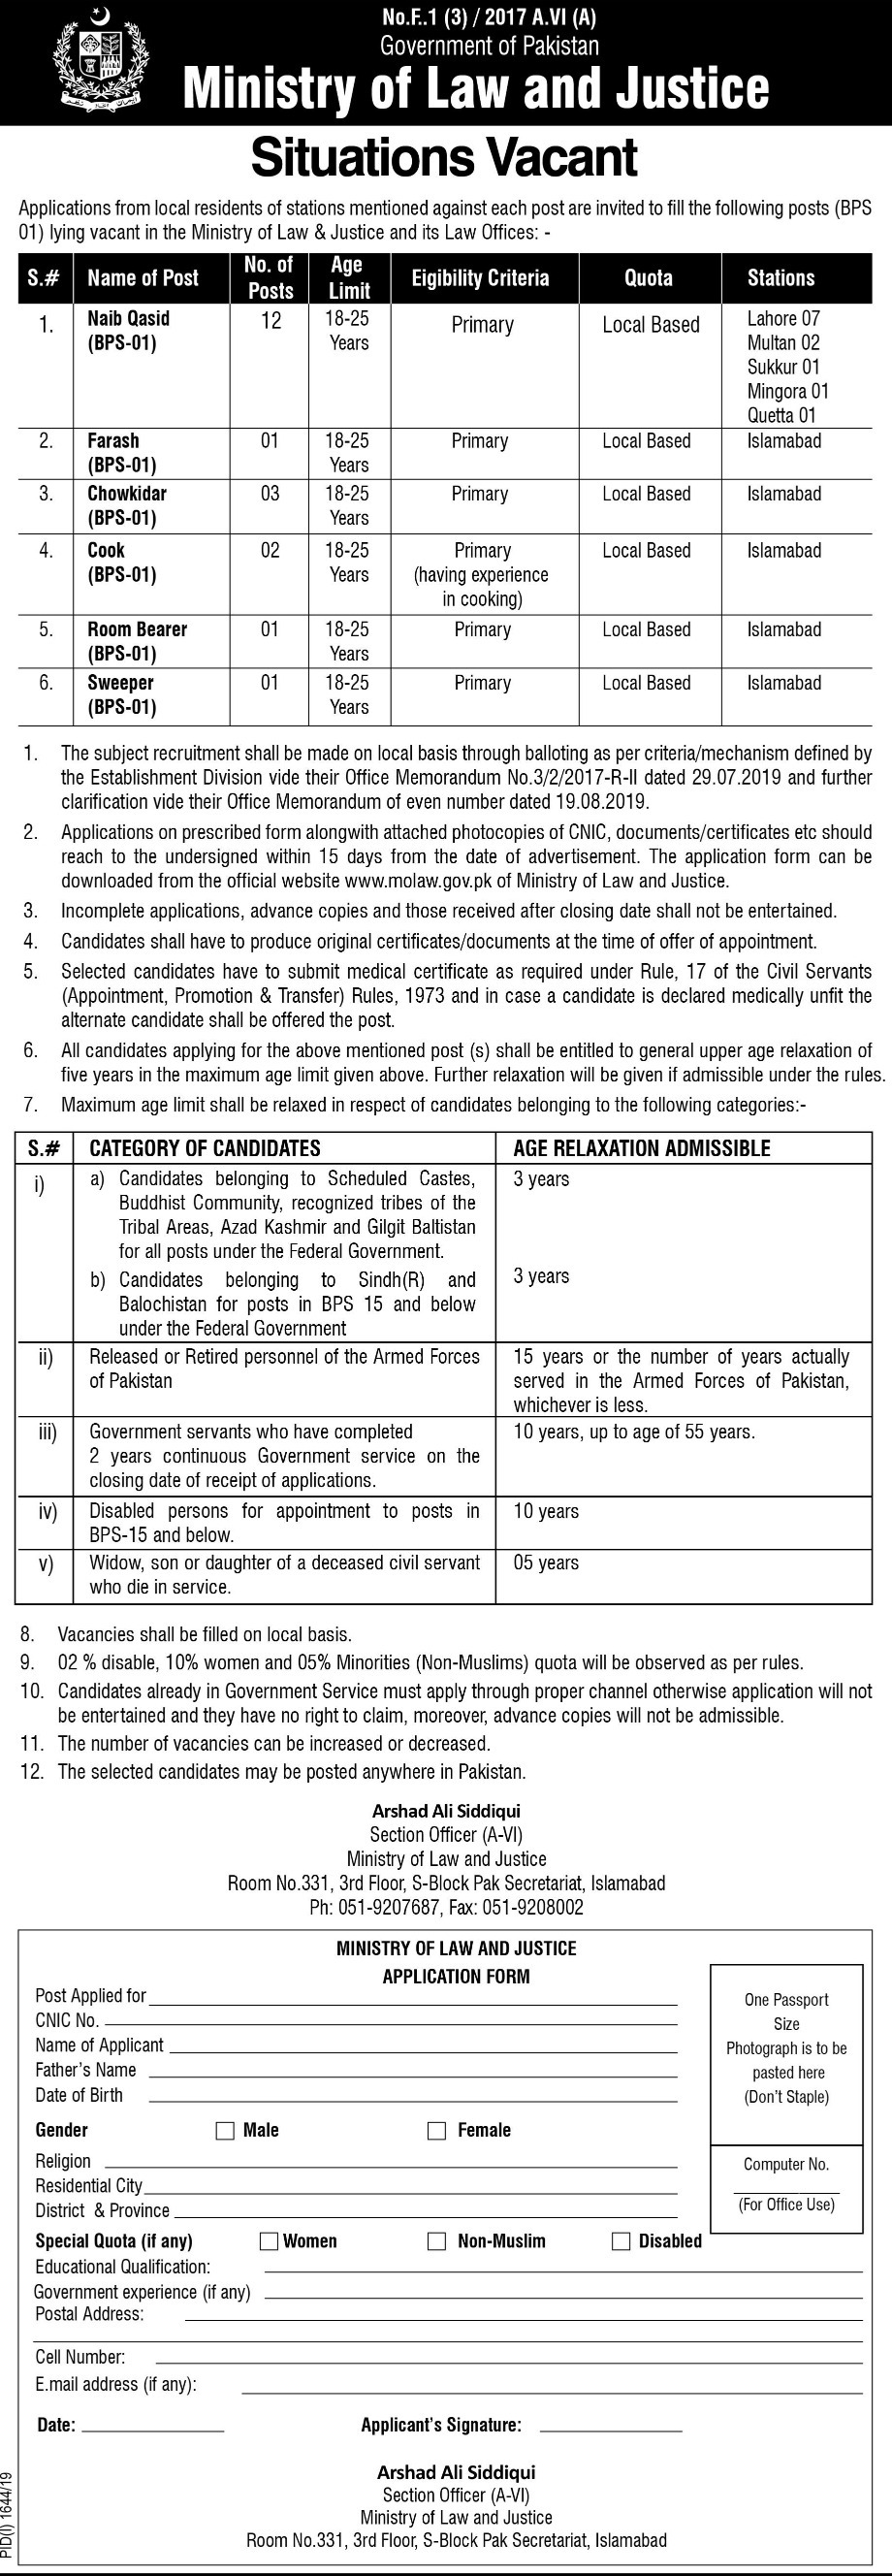 Ministry of Law & Justice Jobs 2019 Application Form